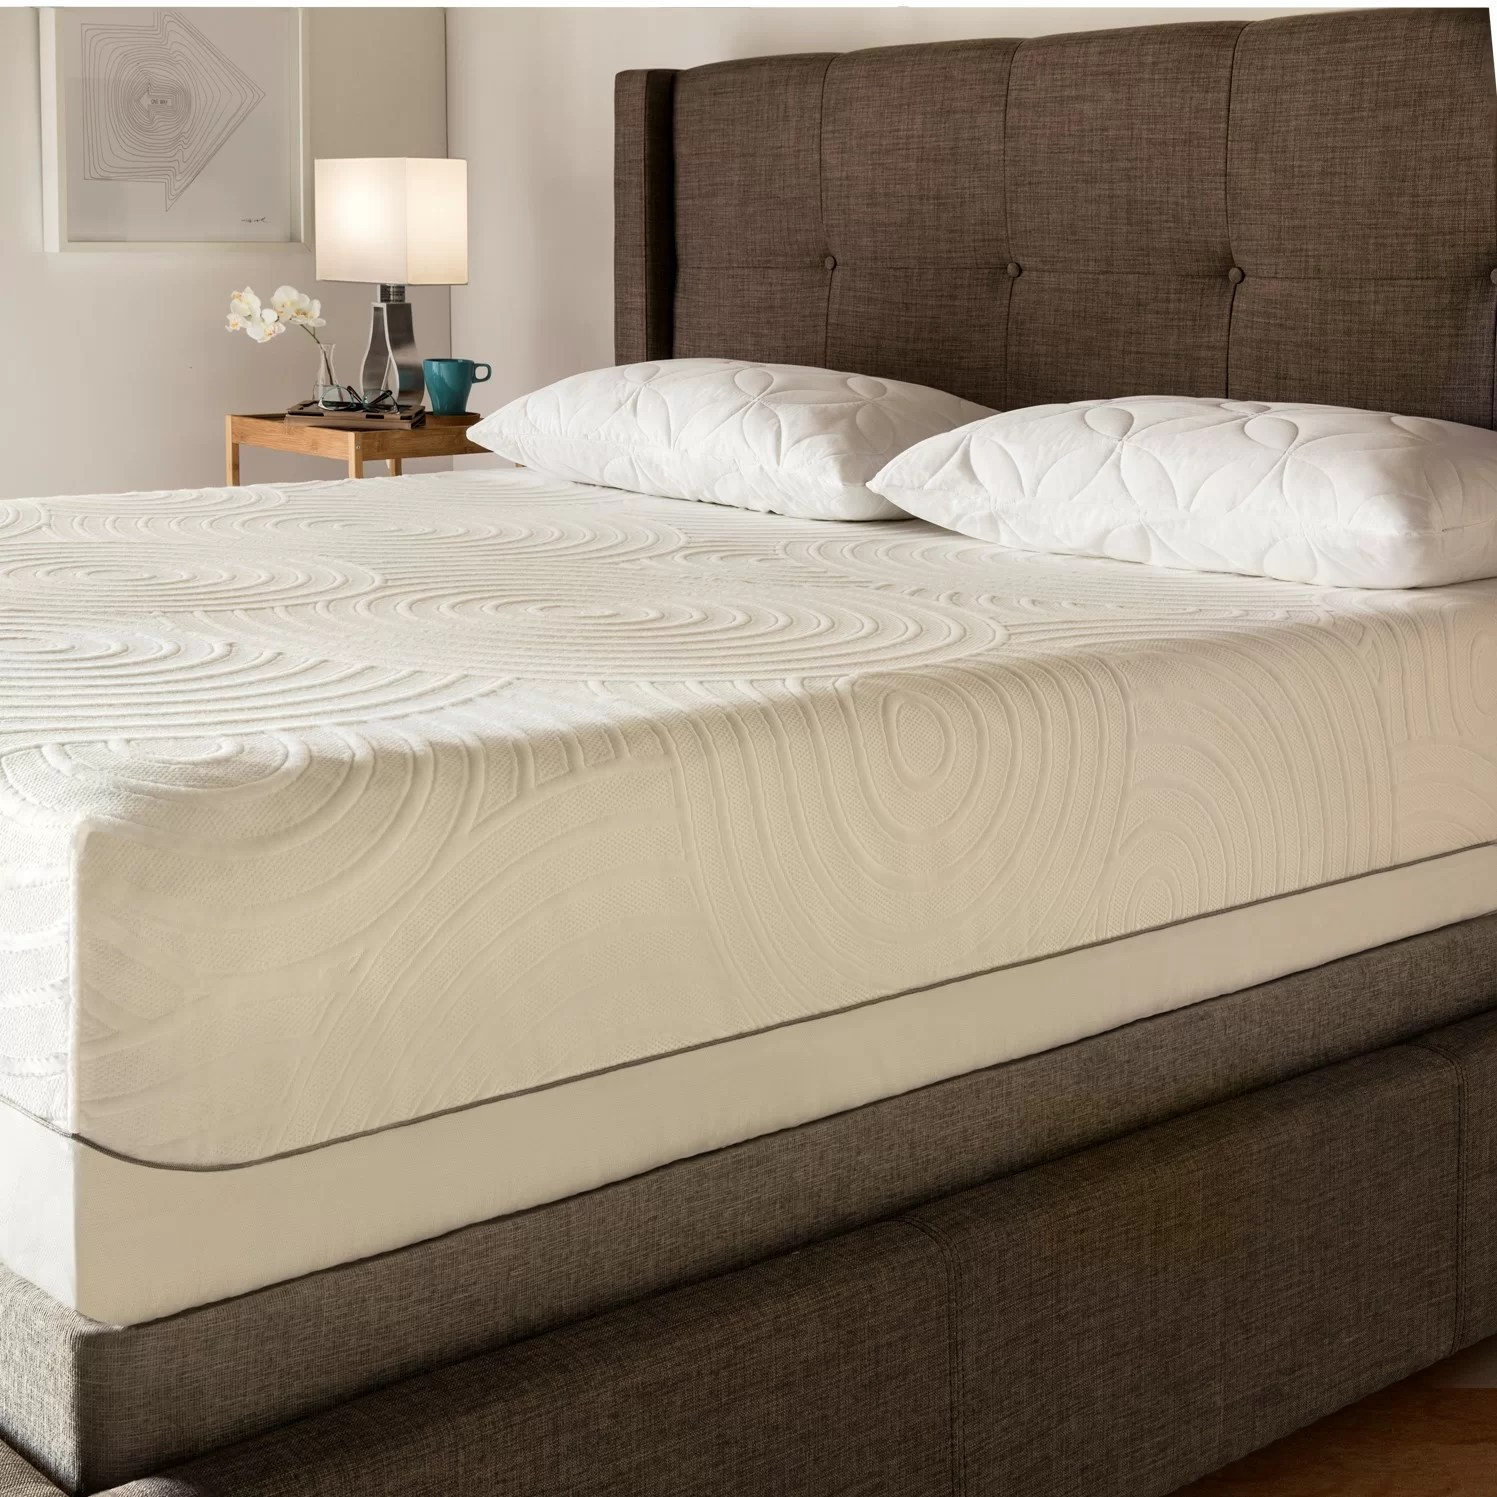 Super King Size Waterproof Mattress Protector Tempur Waterproof Mattress Protector